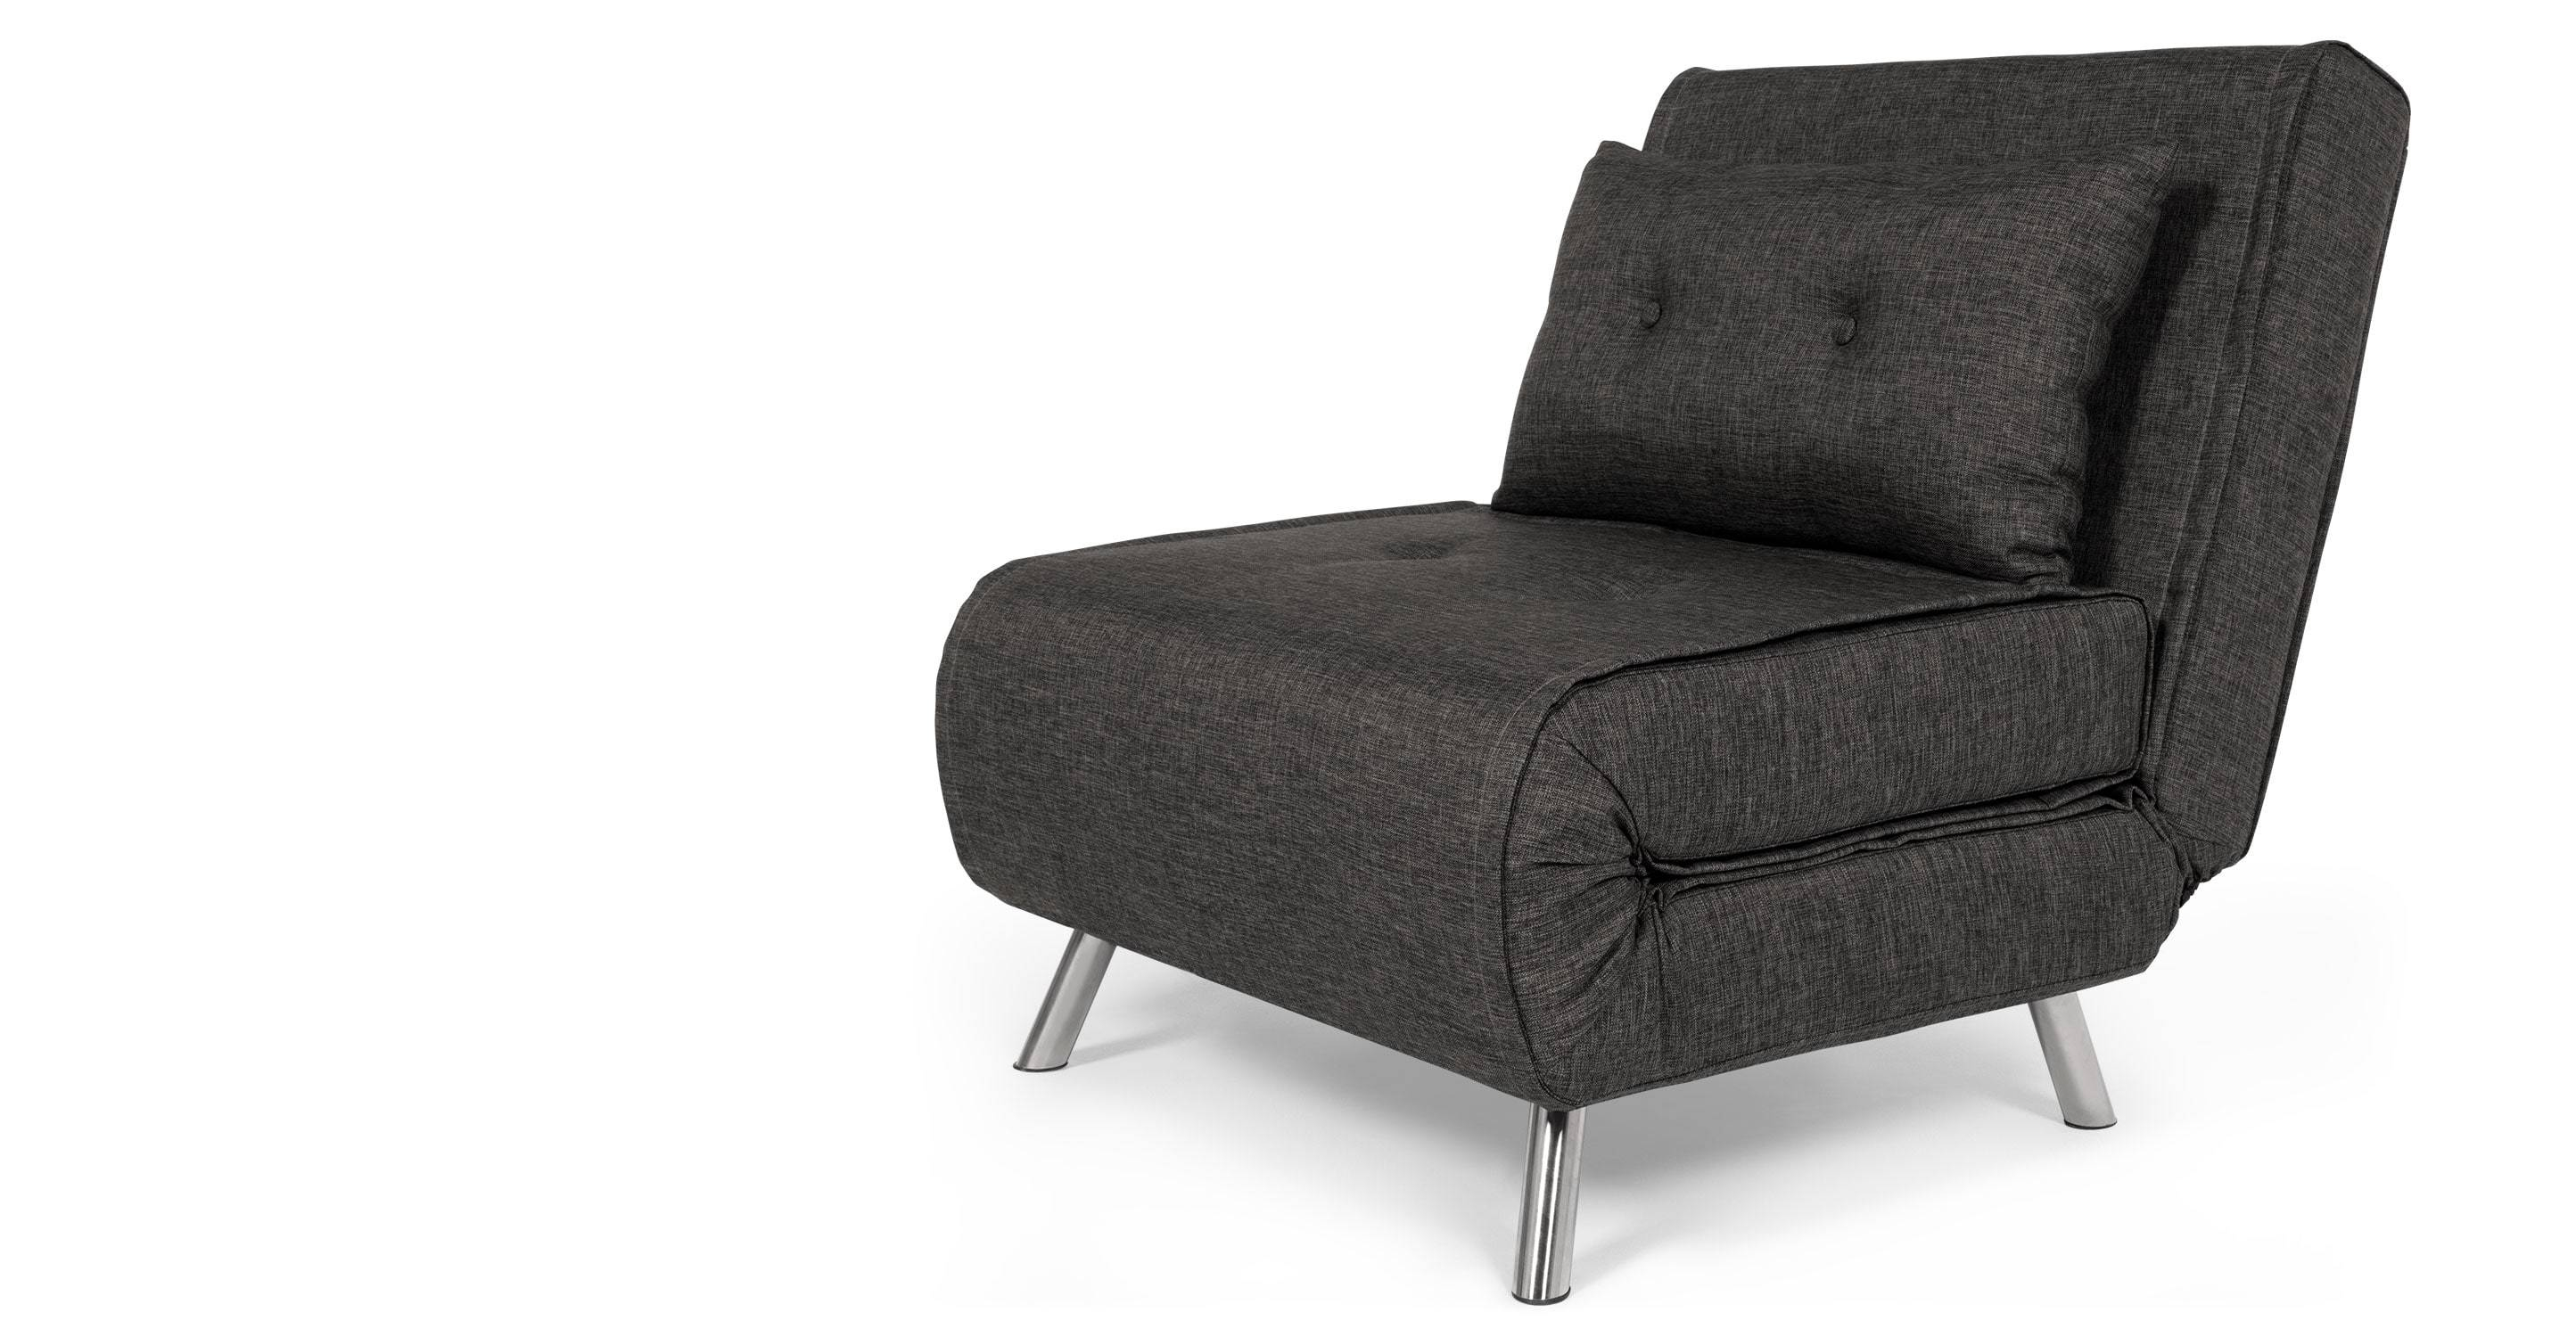 Haru Single Sofa Bed, Cygnet Grey | Made with regard to Sofa Beds Chairs (Image 7 of 15)